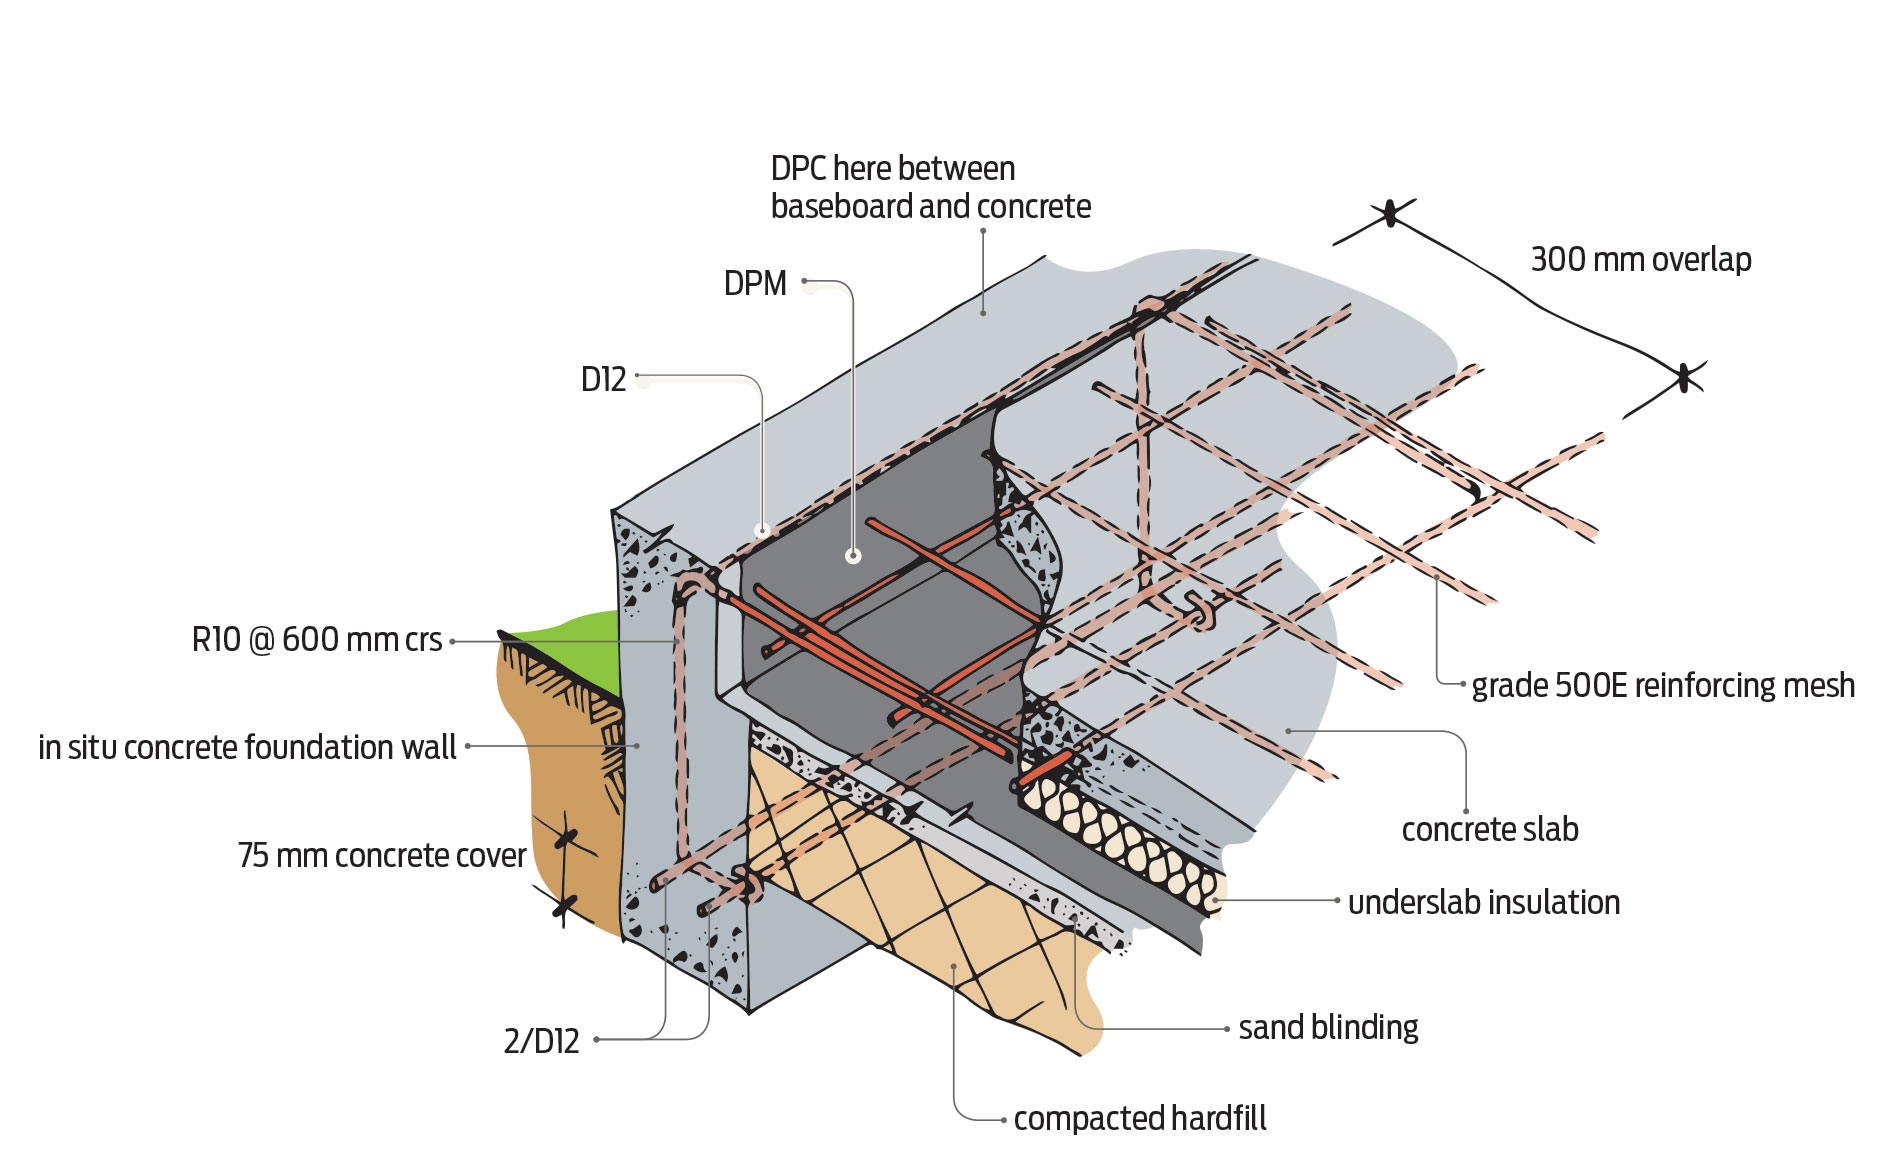 hight resolution of figure 4 reinforcing for concrete masonry foundation edge detail for 1 or 2 storeys